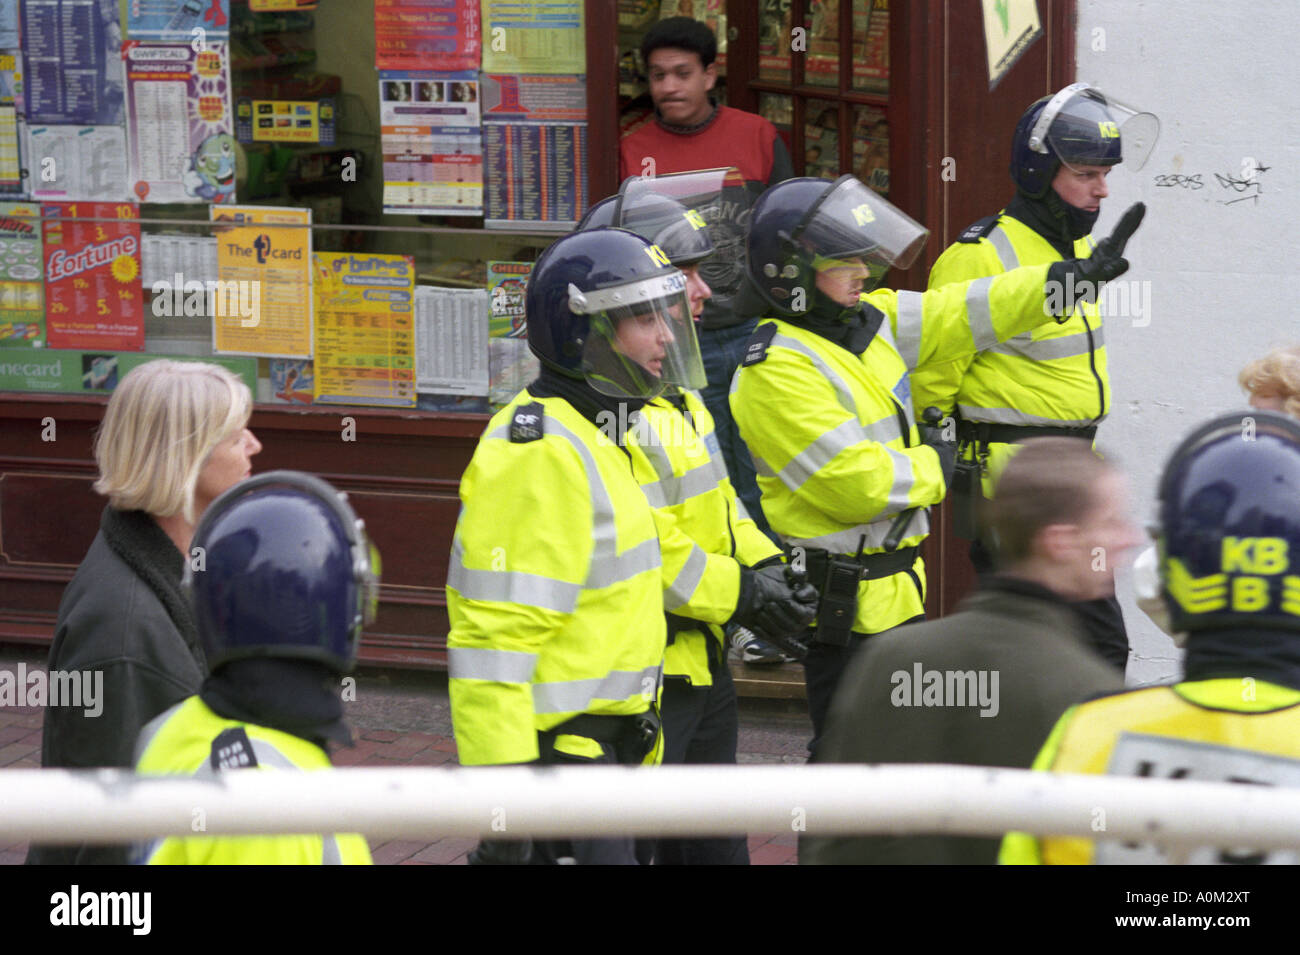 Riot police on duty at a demonstration in Brighton England - Stock Image